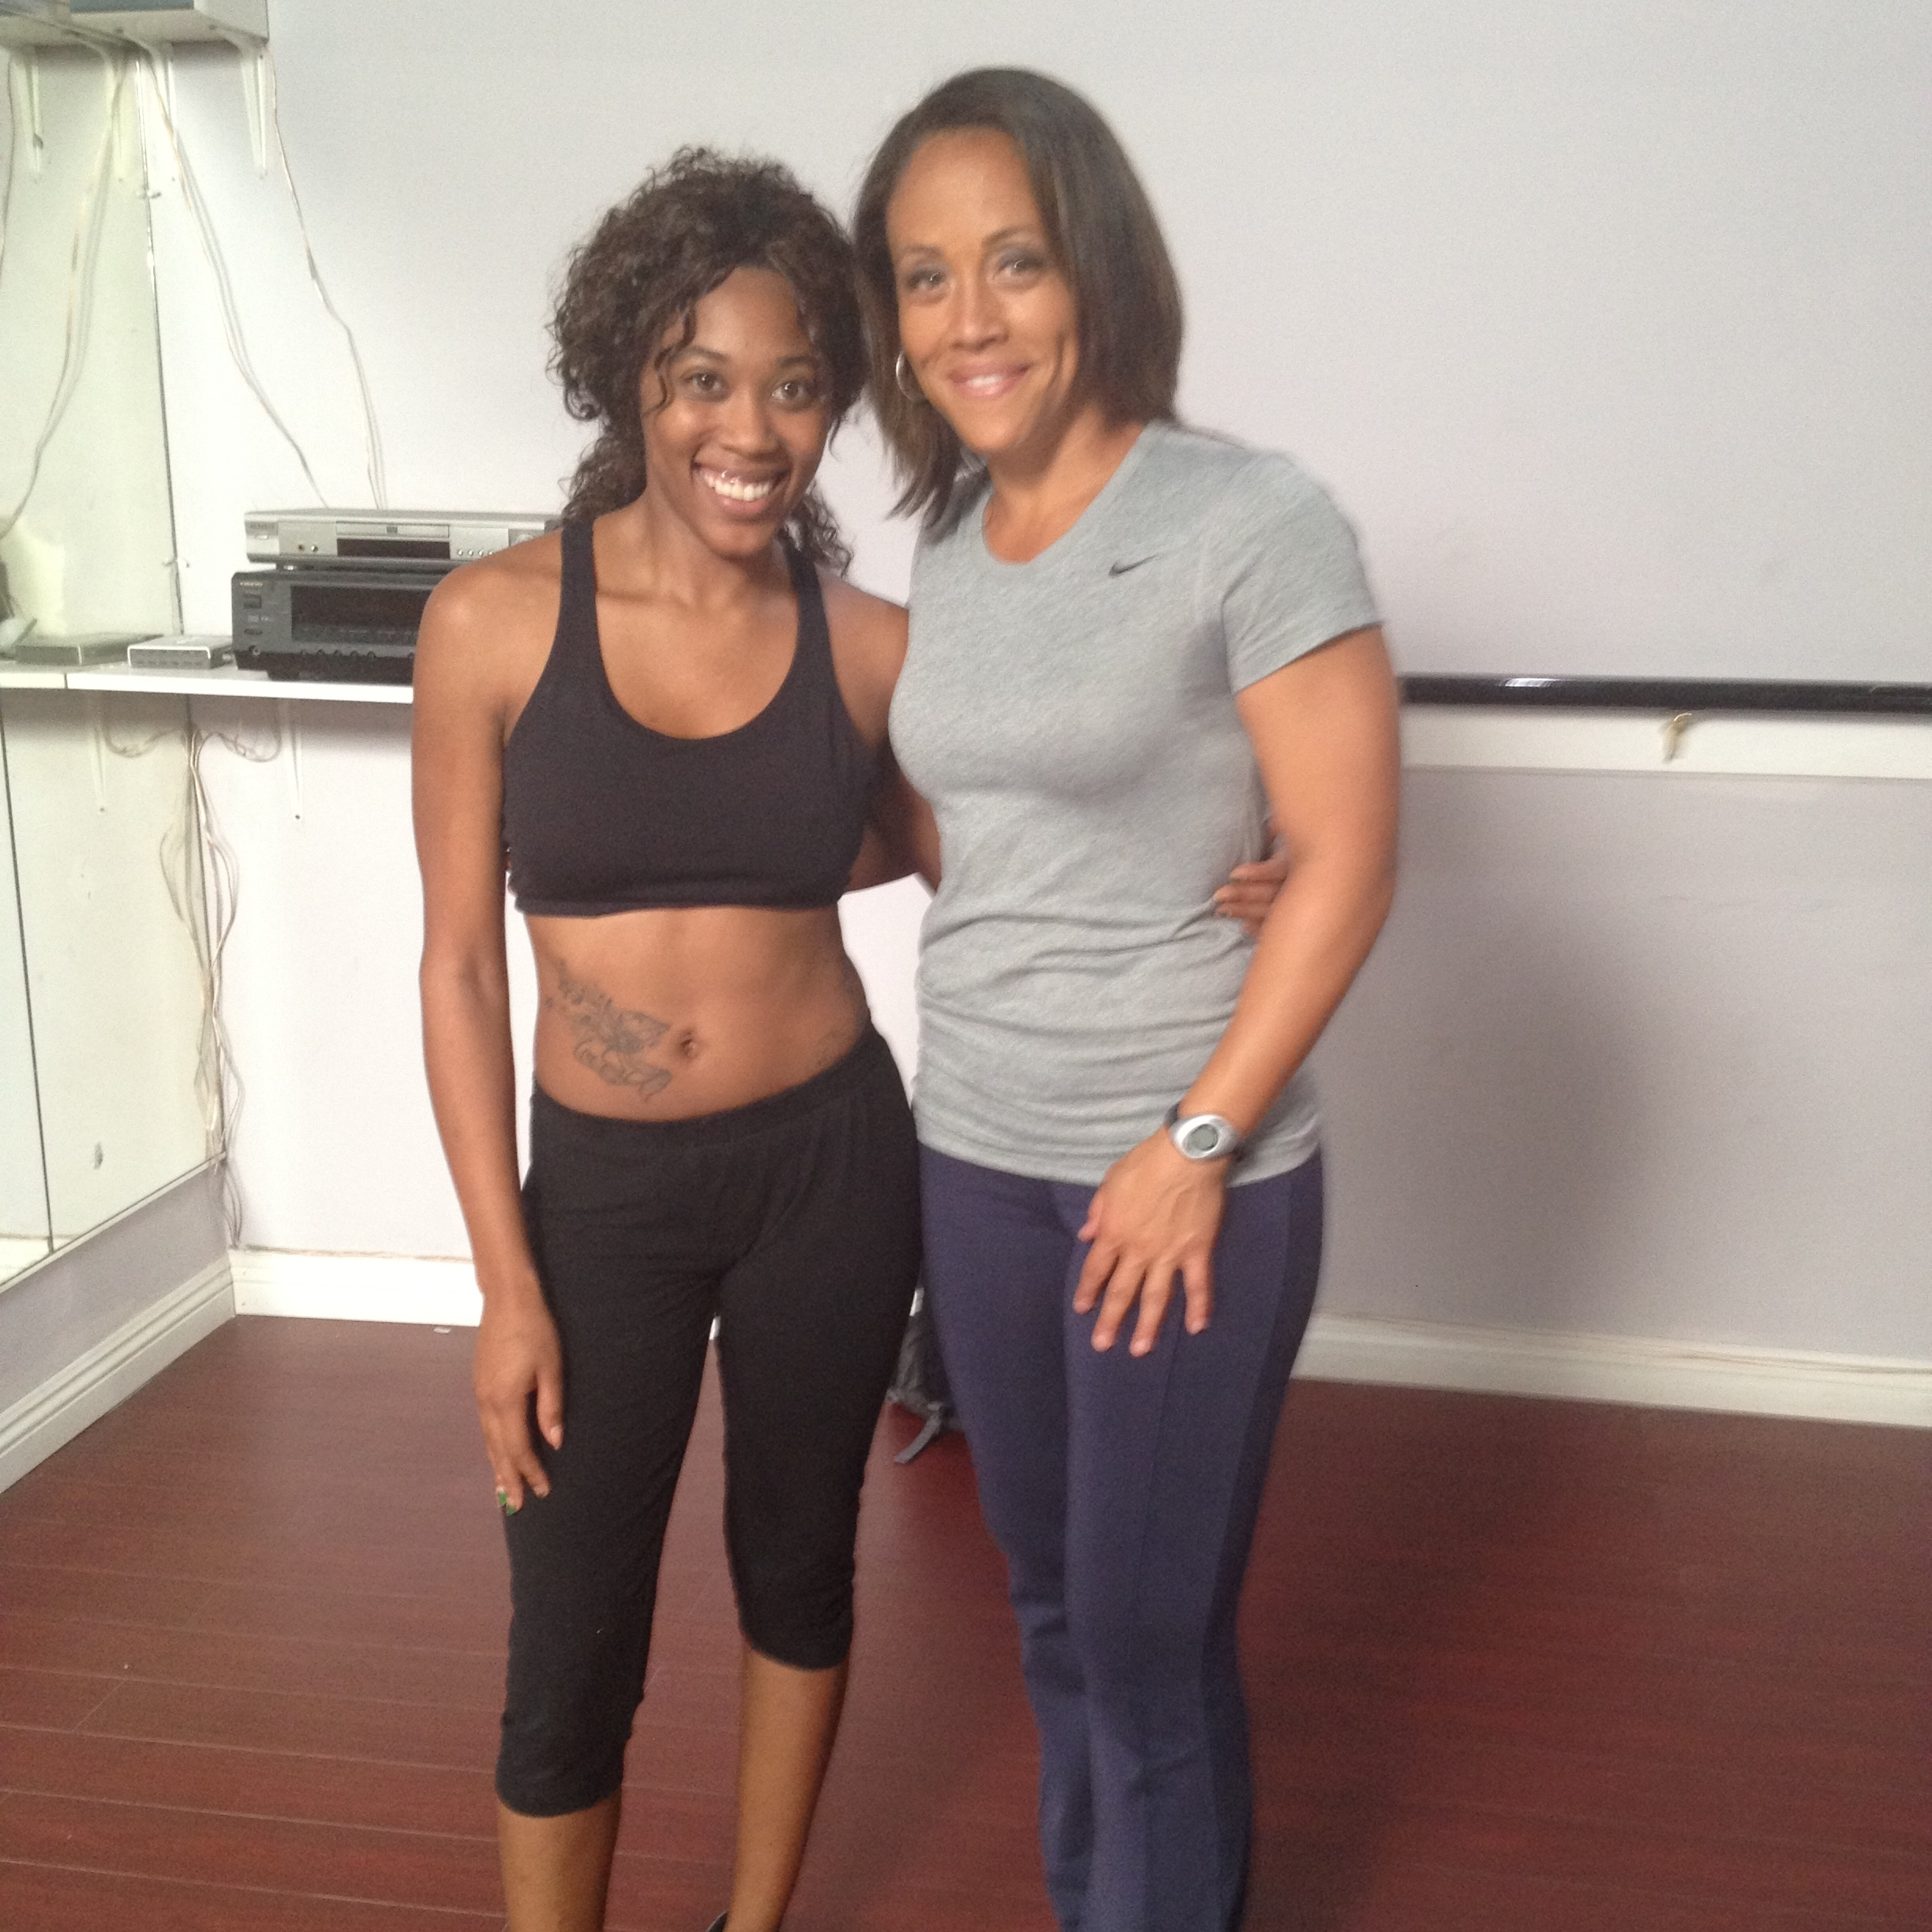 BTS with Erica Ringor (Love and Basketball) on set of webseries